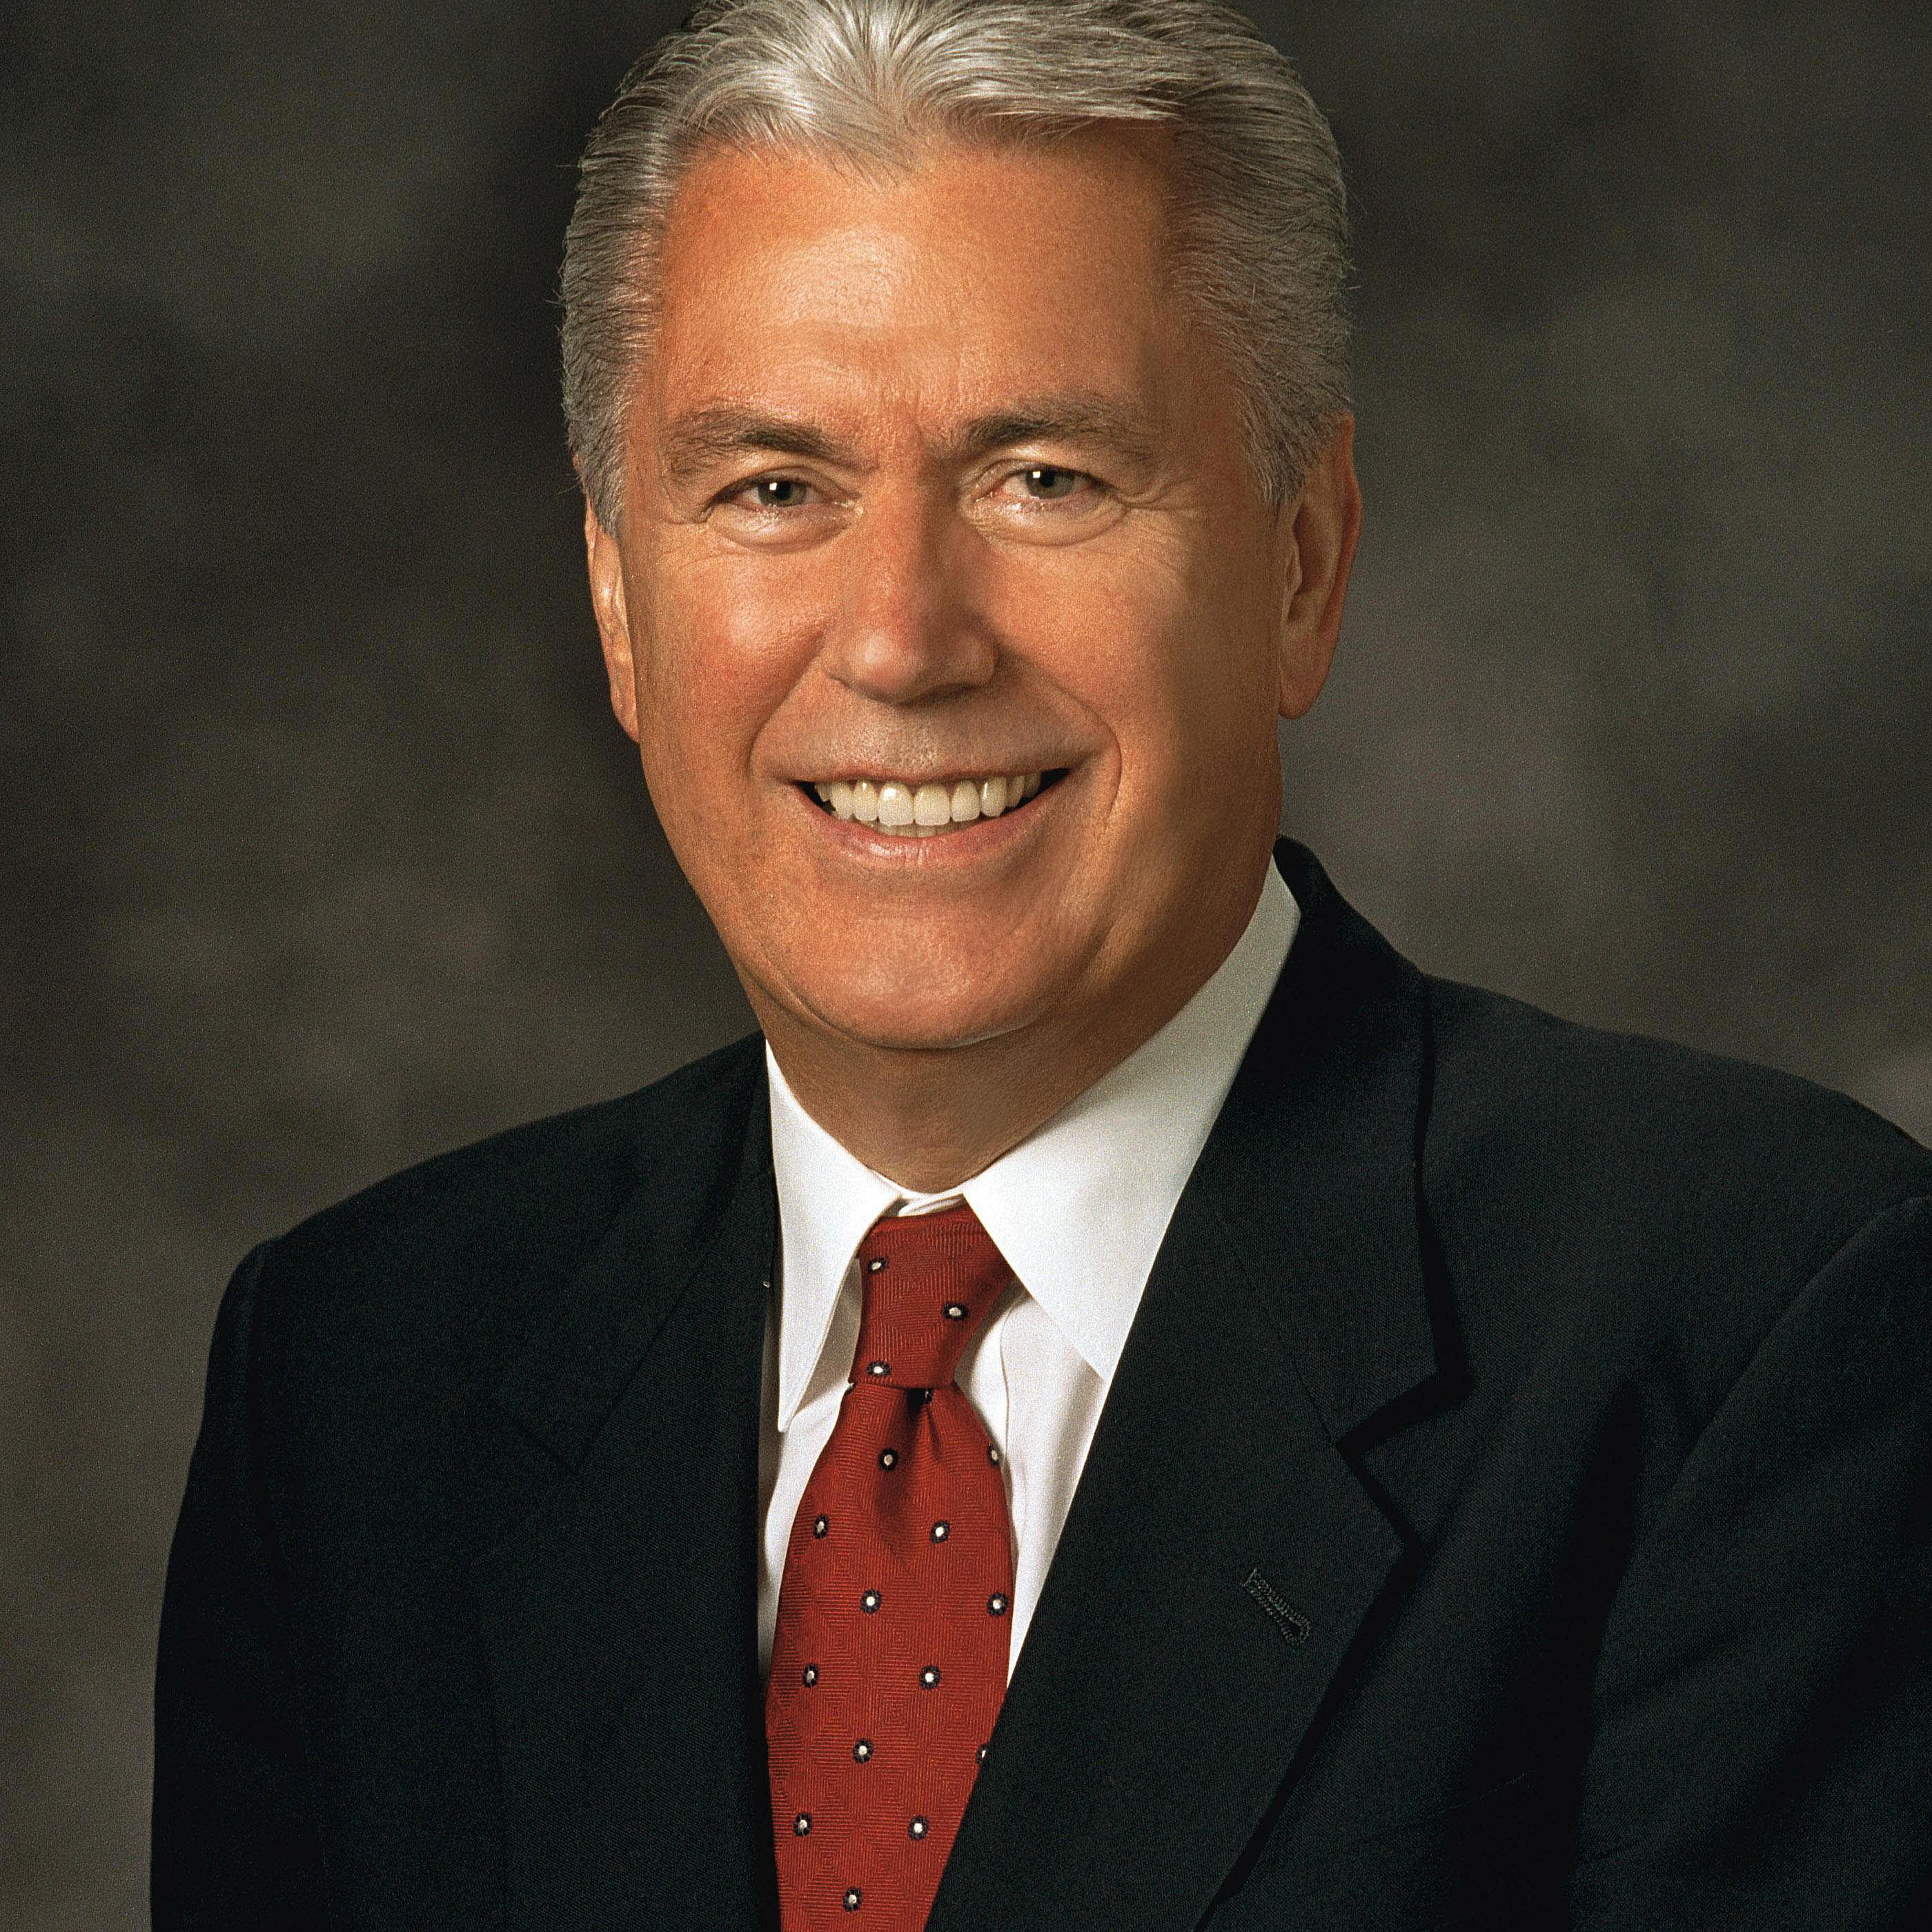 President Dieter F. Uchtdorf, second counselor in the First Presidency.